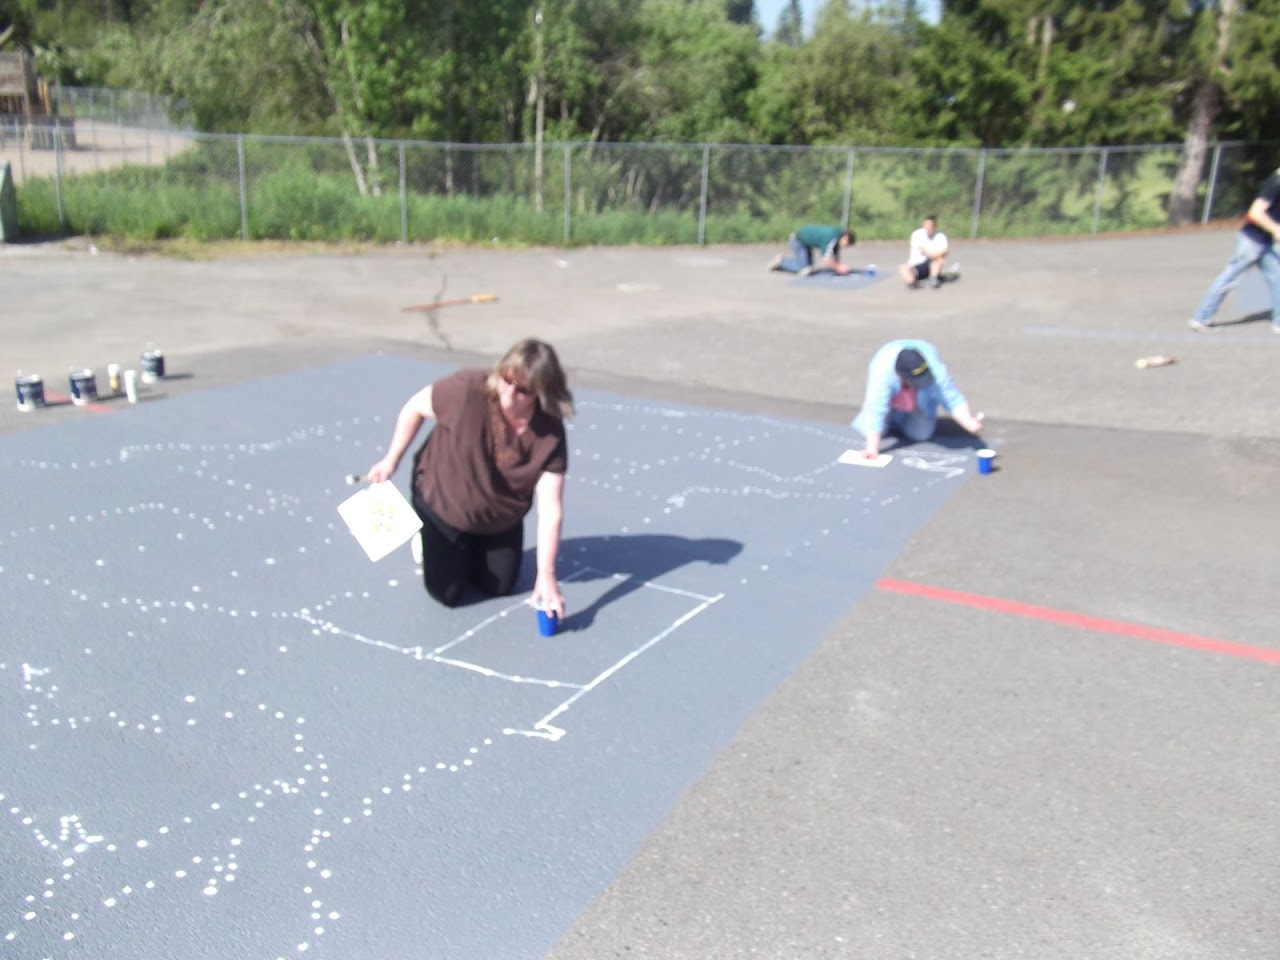 Adults were tasked with drawing in the lines between the dots...because they were more careful!?